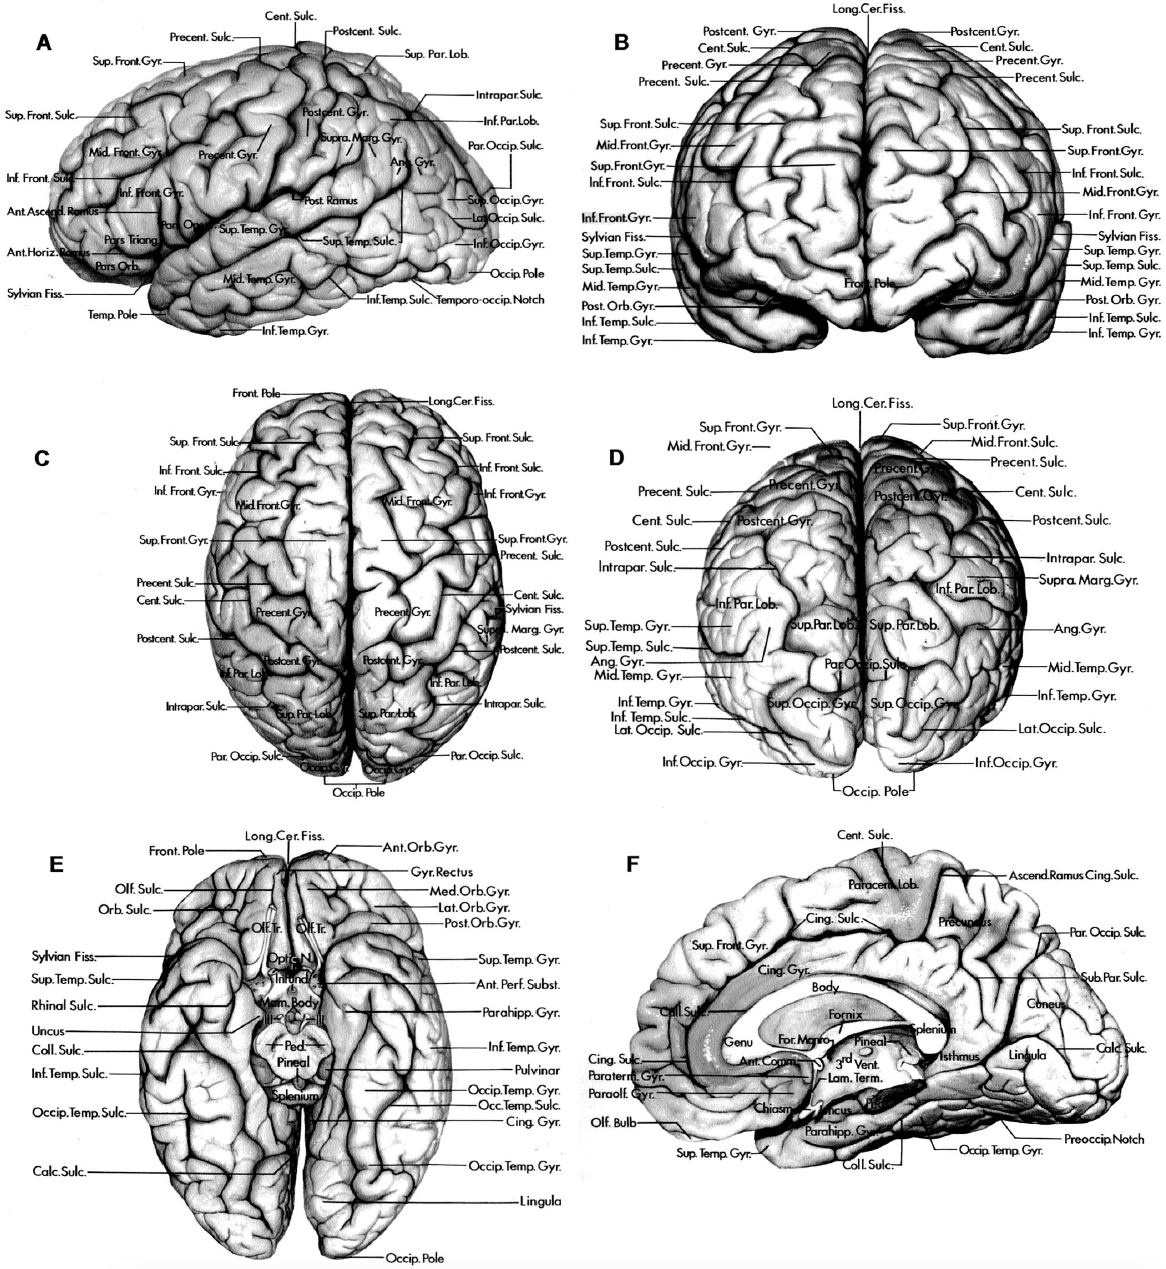 Figure 1.3. Lateral, medial, and inferior surfaces of the cerebral hemispheres. A–D, lateral surface (A, lateral view; B, anterior view; C, superior view; D, posterior view). E, inferior surface. F, medial surface. A–F, the longitudinal cerebral fissure separates the cerebral hemispheres. The lateral surface of the frontal lobe extends from the frontal pole to the central sulcus and is demarcated inferiorly by the sylvian fissure. The precentral gyrus is situated between the central and precentral sulcus. The superior and inferior frontal sulci divide the part of the lateral surface in front of the precentral gyrus into the superior, middle, and inferior frontal gyri. The inferior frontal gyrus is divided by the anterior horizontal and the anterior ascending rami of the sylvian fissure into the pars orbitalis, pars triangularis, and pars opercularis. The parietal lobe is demarcated anteriorly by the central sulcus and posteriorly by a line extending from the superior limit of the parieto-occipital sulcus to the preoccipital notch. The anterior part of the parietal lobe is formed by the postcentral gyrus, which is situated between the central and postcentral sulci. The area behind the postcentral sulcus is divided by the intraparietal sulcus into the superior and inferior parietal lobules. The inferior parietal lobule includes the supramarginal gyrus, which surrounds the upturned end of the posterior ramus of the sylvian fissure, and the angular gyrus, which surrounds the upturned posterior end of the superior temporal sulcus. The lateral occipital sulcus divides the lateral aspect of the occipital lobe into the superior and inferior occipital gyri. The lateral surface of the temporal lobe behind the temporal pole is divided into the superior, middle, and inferior temporal gyri by the superior and inferior temporal sulci. The inferior surface of the frontal lobe is formed by the gyrus rectus and the orbital gyri. The olfactory tract courses in the olfactory sulcus, which separates the gyrus rectus from the orbital gyri. The orbital sulci divide the orbital surface of the frontal lobe into the anterior, medial, lateral, and posterior orbital gyri. The inferior surface of the temporal lobe, proceeding from medial to lateral, is formed by the parahippocampal, occipitotemporal, and inferior temporal gyri. The occipitotemporal sulcus separates the occipitotemporal and inferior temporal gyri. The collateral and rhinal sulci separate the parahippocampal and occipitotemporal gyri. A narrow strip of cortex at the posterior end of the parahippocampal gyrus, called the isthmus of the cingulate gyrus, wraps around the splenium of the corpus callosum and connects the posterior ends of the parahippocampal and cingulate gyri. On the medial surface of the hemisphere, the callosal sulcus separates the corpus callosum from the cingulate gyrus. The cingulate sulcus separates the cingulate gyrus from the superior frontal gyrus. The ascending ramus of the cingulate sulcus ascends along the posterior margin of the paracentral lobule. The subparietal sulcus separates the precuneus and the cingulate gyrus. The parieto-occipital sulcus separates the precuneus and the cuneus. The calcarine sulcus extends forward from the occipital pole and divides the medial surface of the occipital lobe between the cuneus and lingula. The paraterminal and paraolfactory gyri are situated below the corpus callosum in front of the lamina terminalis and anterior commissure. The inferior surface of the occipital lobe is formed by the lower part of the lingula and inferior occipital gyrus and the posterior part of the occipitotemporal gyrus. The mamillary bodies and infundibulum are in the floor of the third ventricle below the foramen of Monro. The oculomotor nerves arise on the medial surface of the cerebral peduncles. The optic nerves are situated at the medial ends of the sylvian fissures. Ang., angular; Ant., anterior; Ascend., ascending; Calc., calcarine; Cent., central; Cer., cerebral; Cing., cingulate; Coll., collateral; Comm., commissure; Fiss., fissure; For., foramen; Front., frontal; Gyr., Gyrus; Horiz., horizontal; Inf., inferior; Infund., infundibulum; Intrapar., intraparietal; Lam., lamina; Lat., lateral; Lob., lobule; Long., longitudinal; Mam., mamillary; Marg., marginal; Med., medial; Mid., middle; N., nerve; Occip., occipital; Olf., olfactory; Operc., opercularis; Orb., orbital, orbitalis; Par., parietal; Par. Occip., parieto-occipital; Paracent., paracentral; Parahipp., parahippocampal; Paraolf., paraolfactory; Paraterm., paraterminal; Ped., peduncle; Perf., perforated; Post., posterior; Postcent., postcentral; Precent., precentral; Preoccip., preoccipital; Sub. Par., subparietal; Subst., substance; Sulc., sulcus; Sup., superior; Supra. Marg., supramarginal; Temp., temporal; Temporo-occip., temporo-occipital; Term., terminalis; Tr., tract; Triang., triangularis; Vent., ventricle.